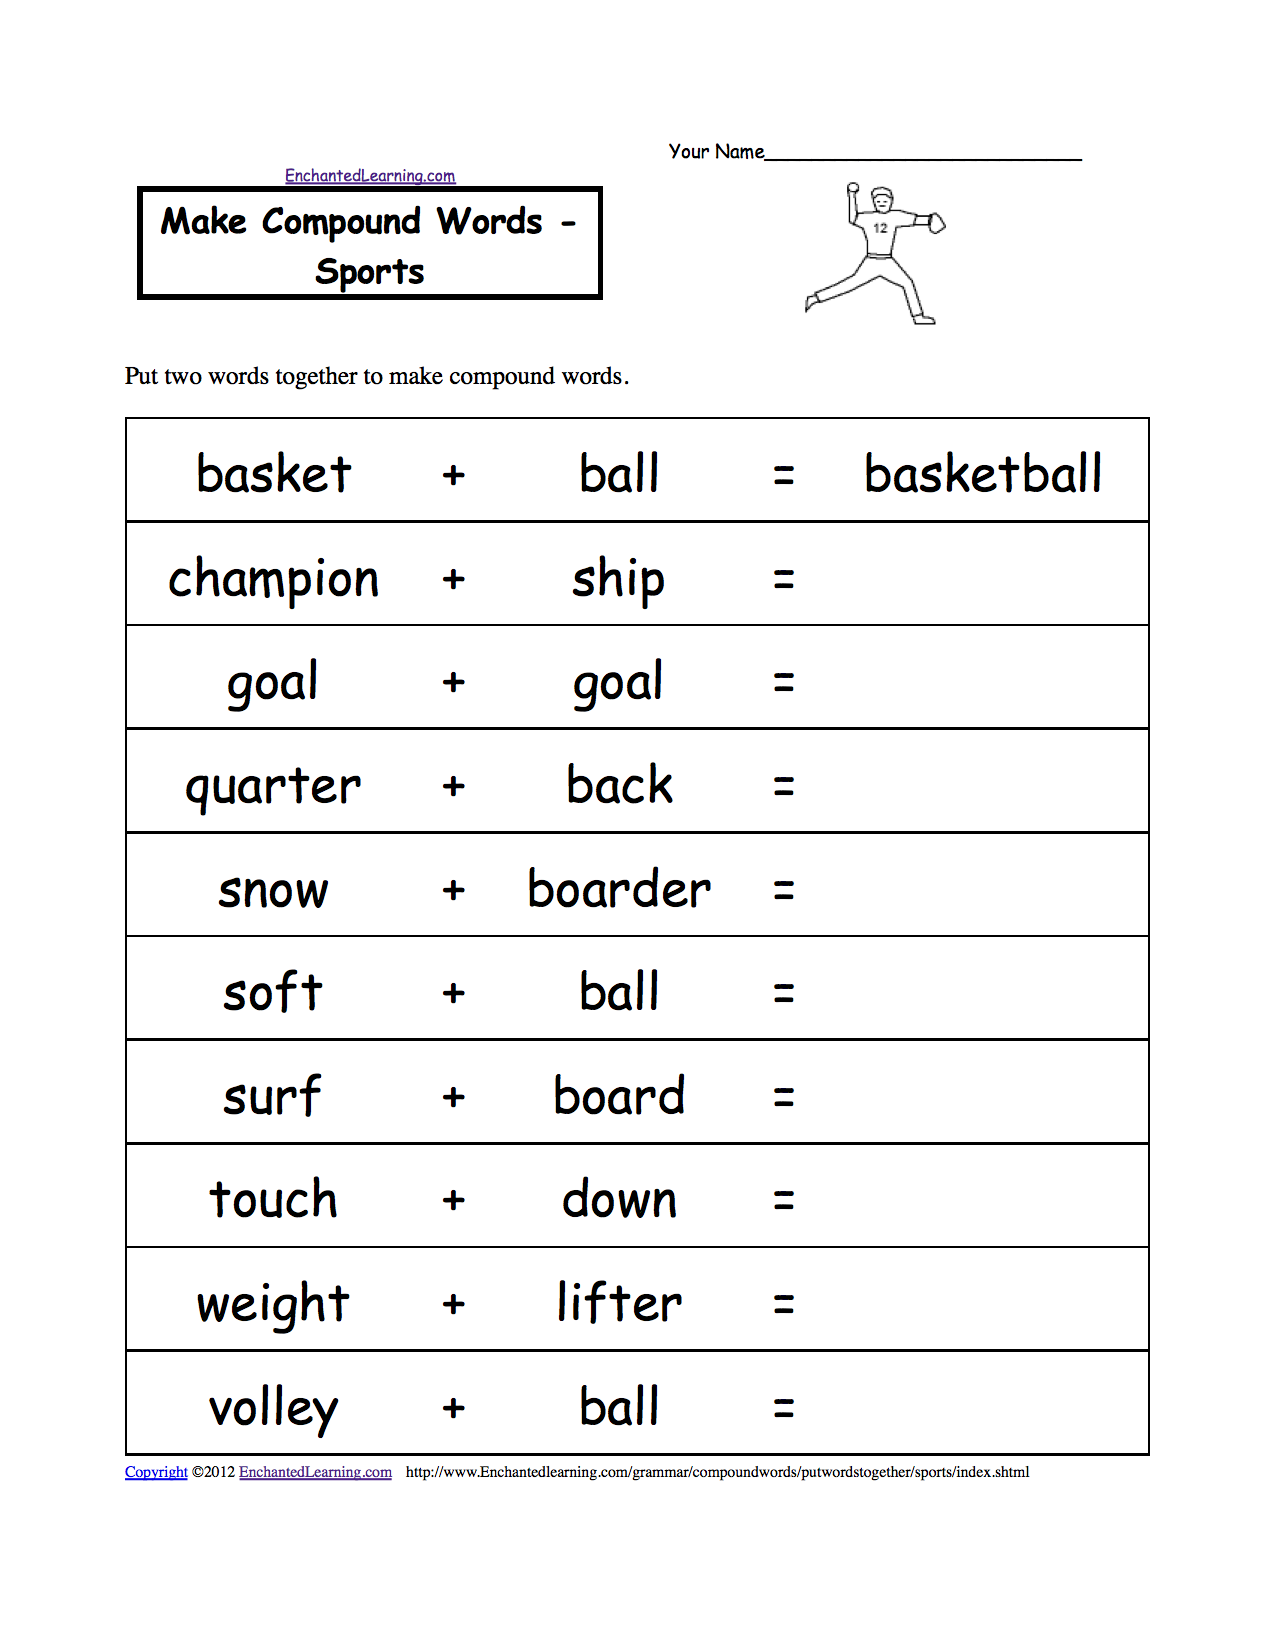 sport worksheets for kids Make Compound Words Sports – Compound Nouns Worksheet